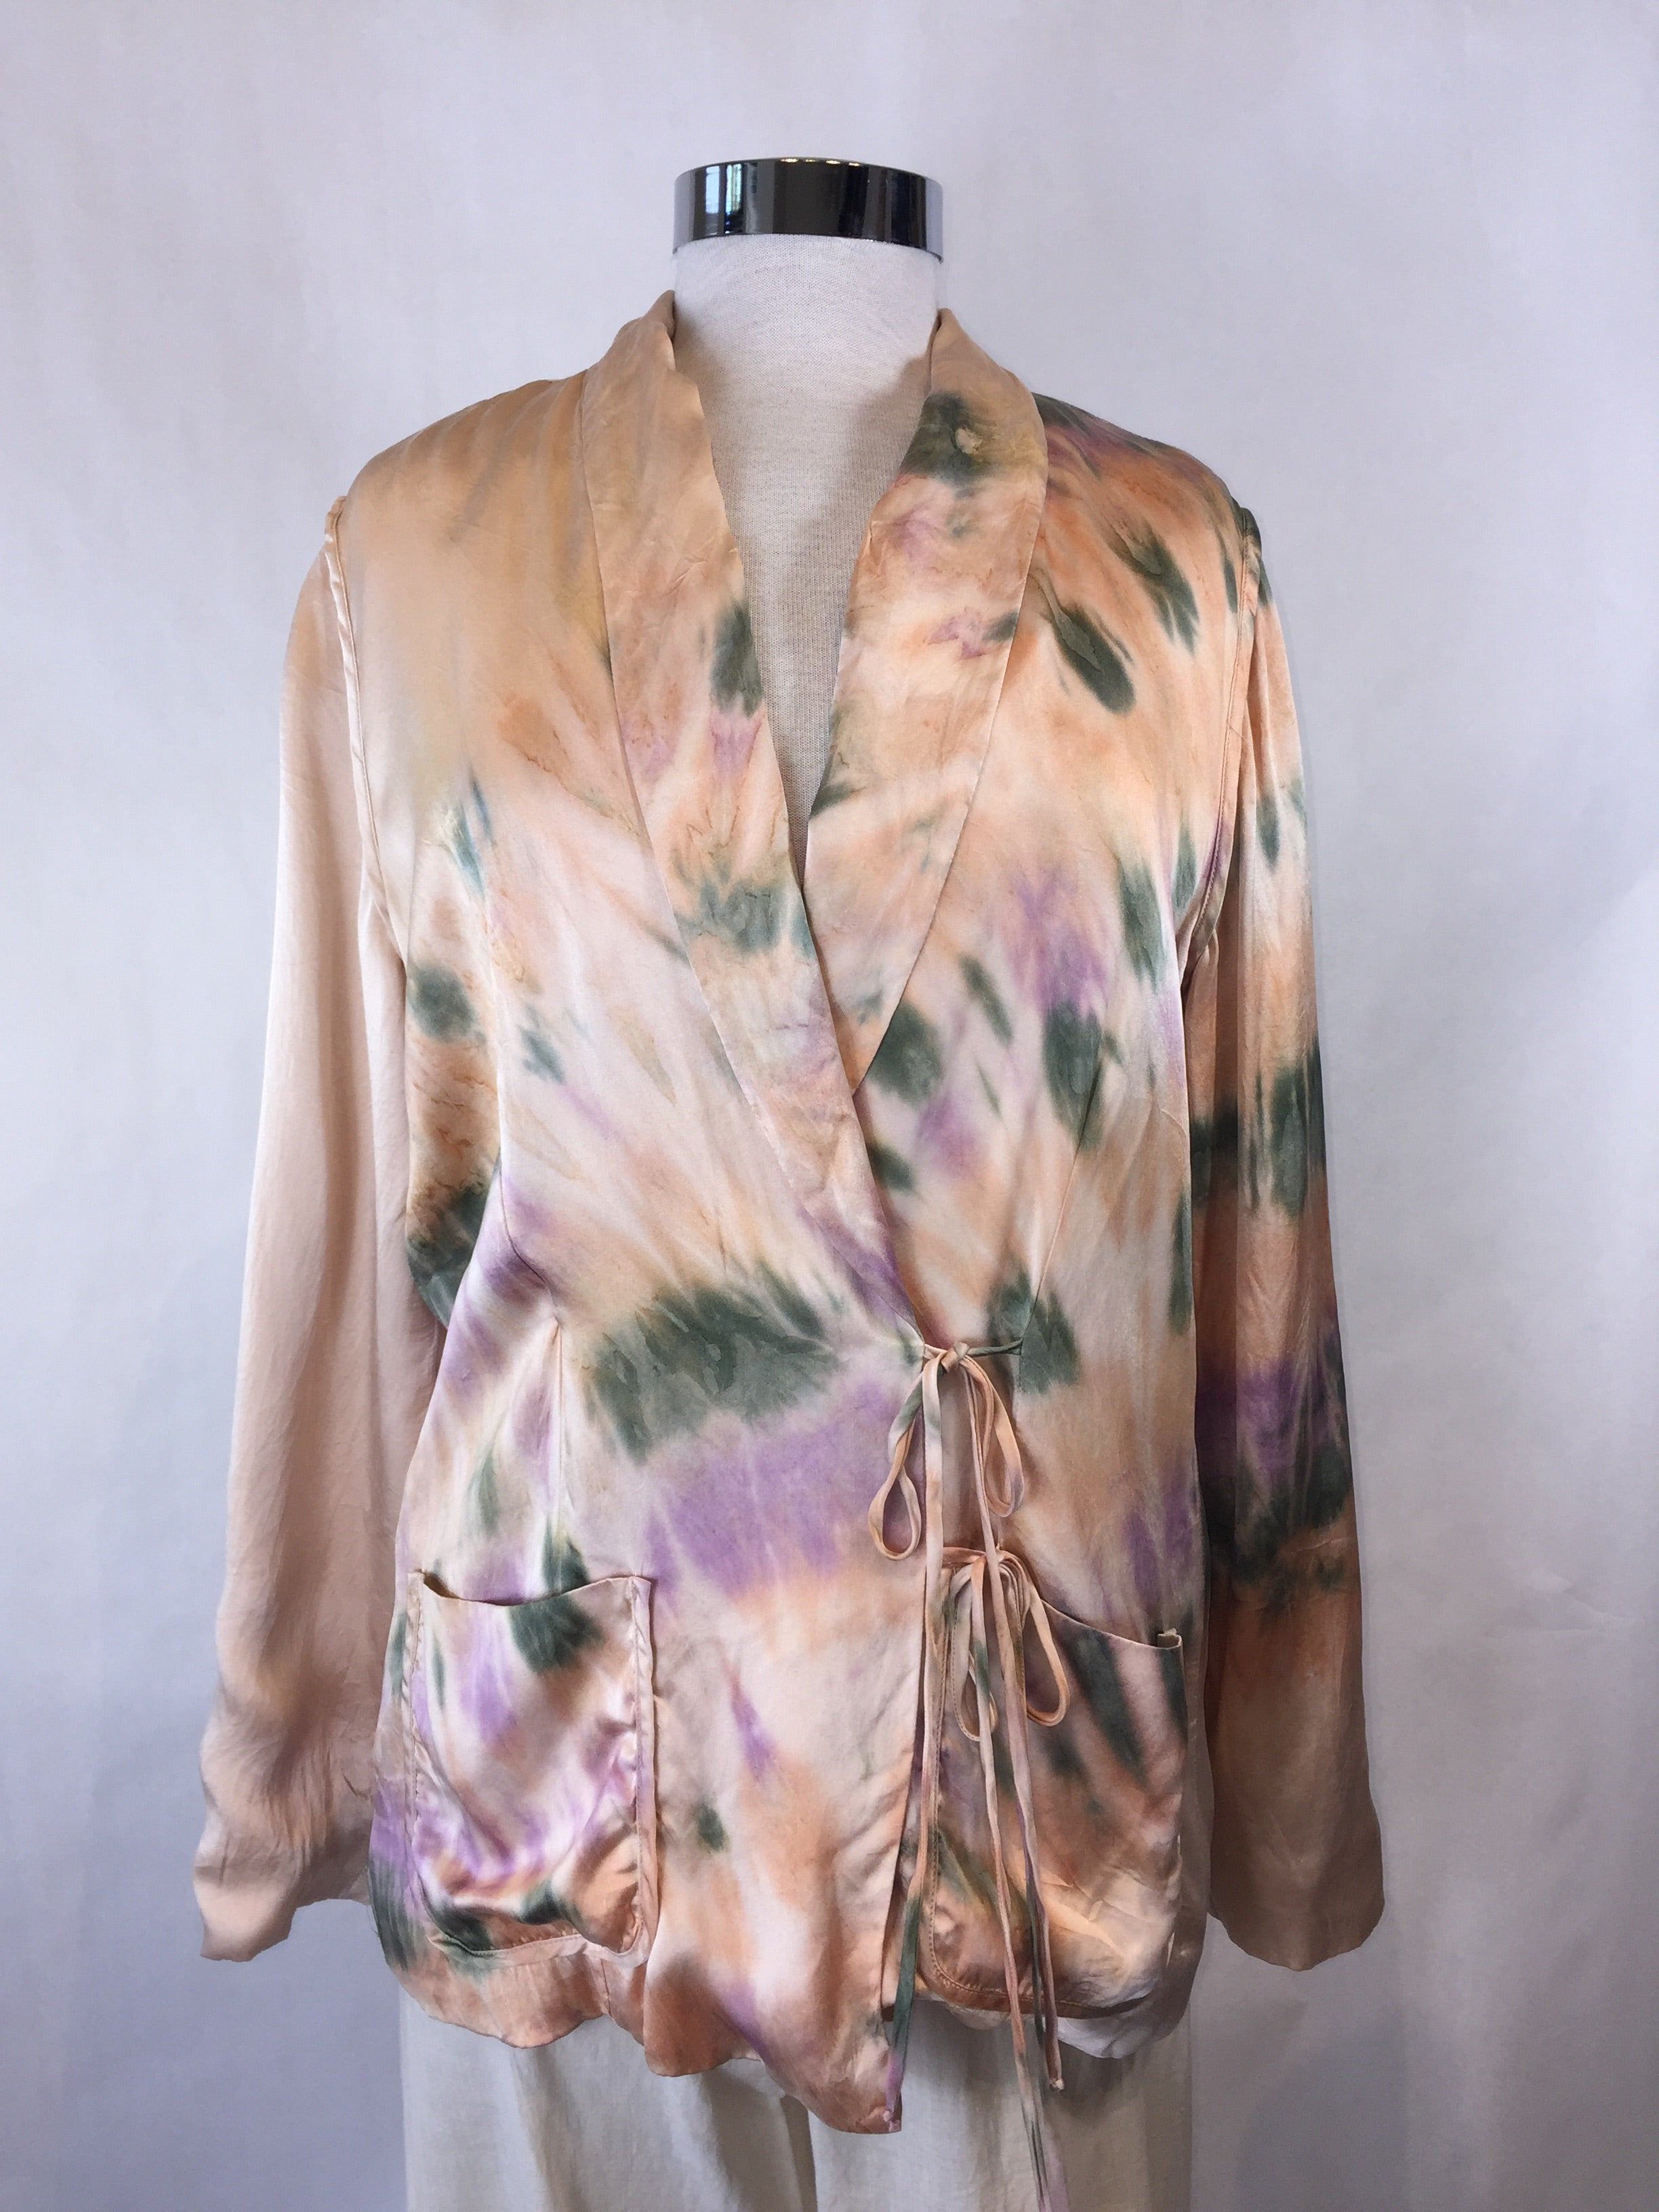 50% OFF - Silk Tie-Dye Wrap Jacket